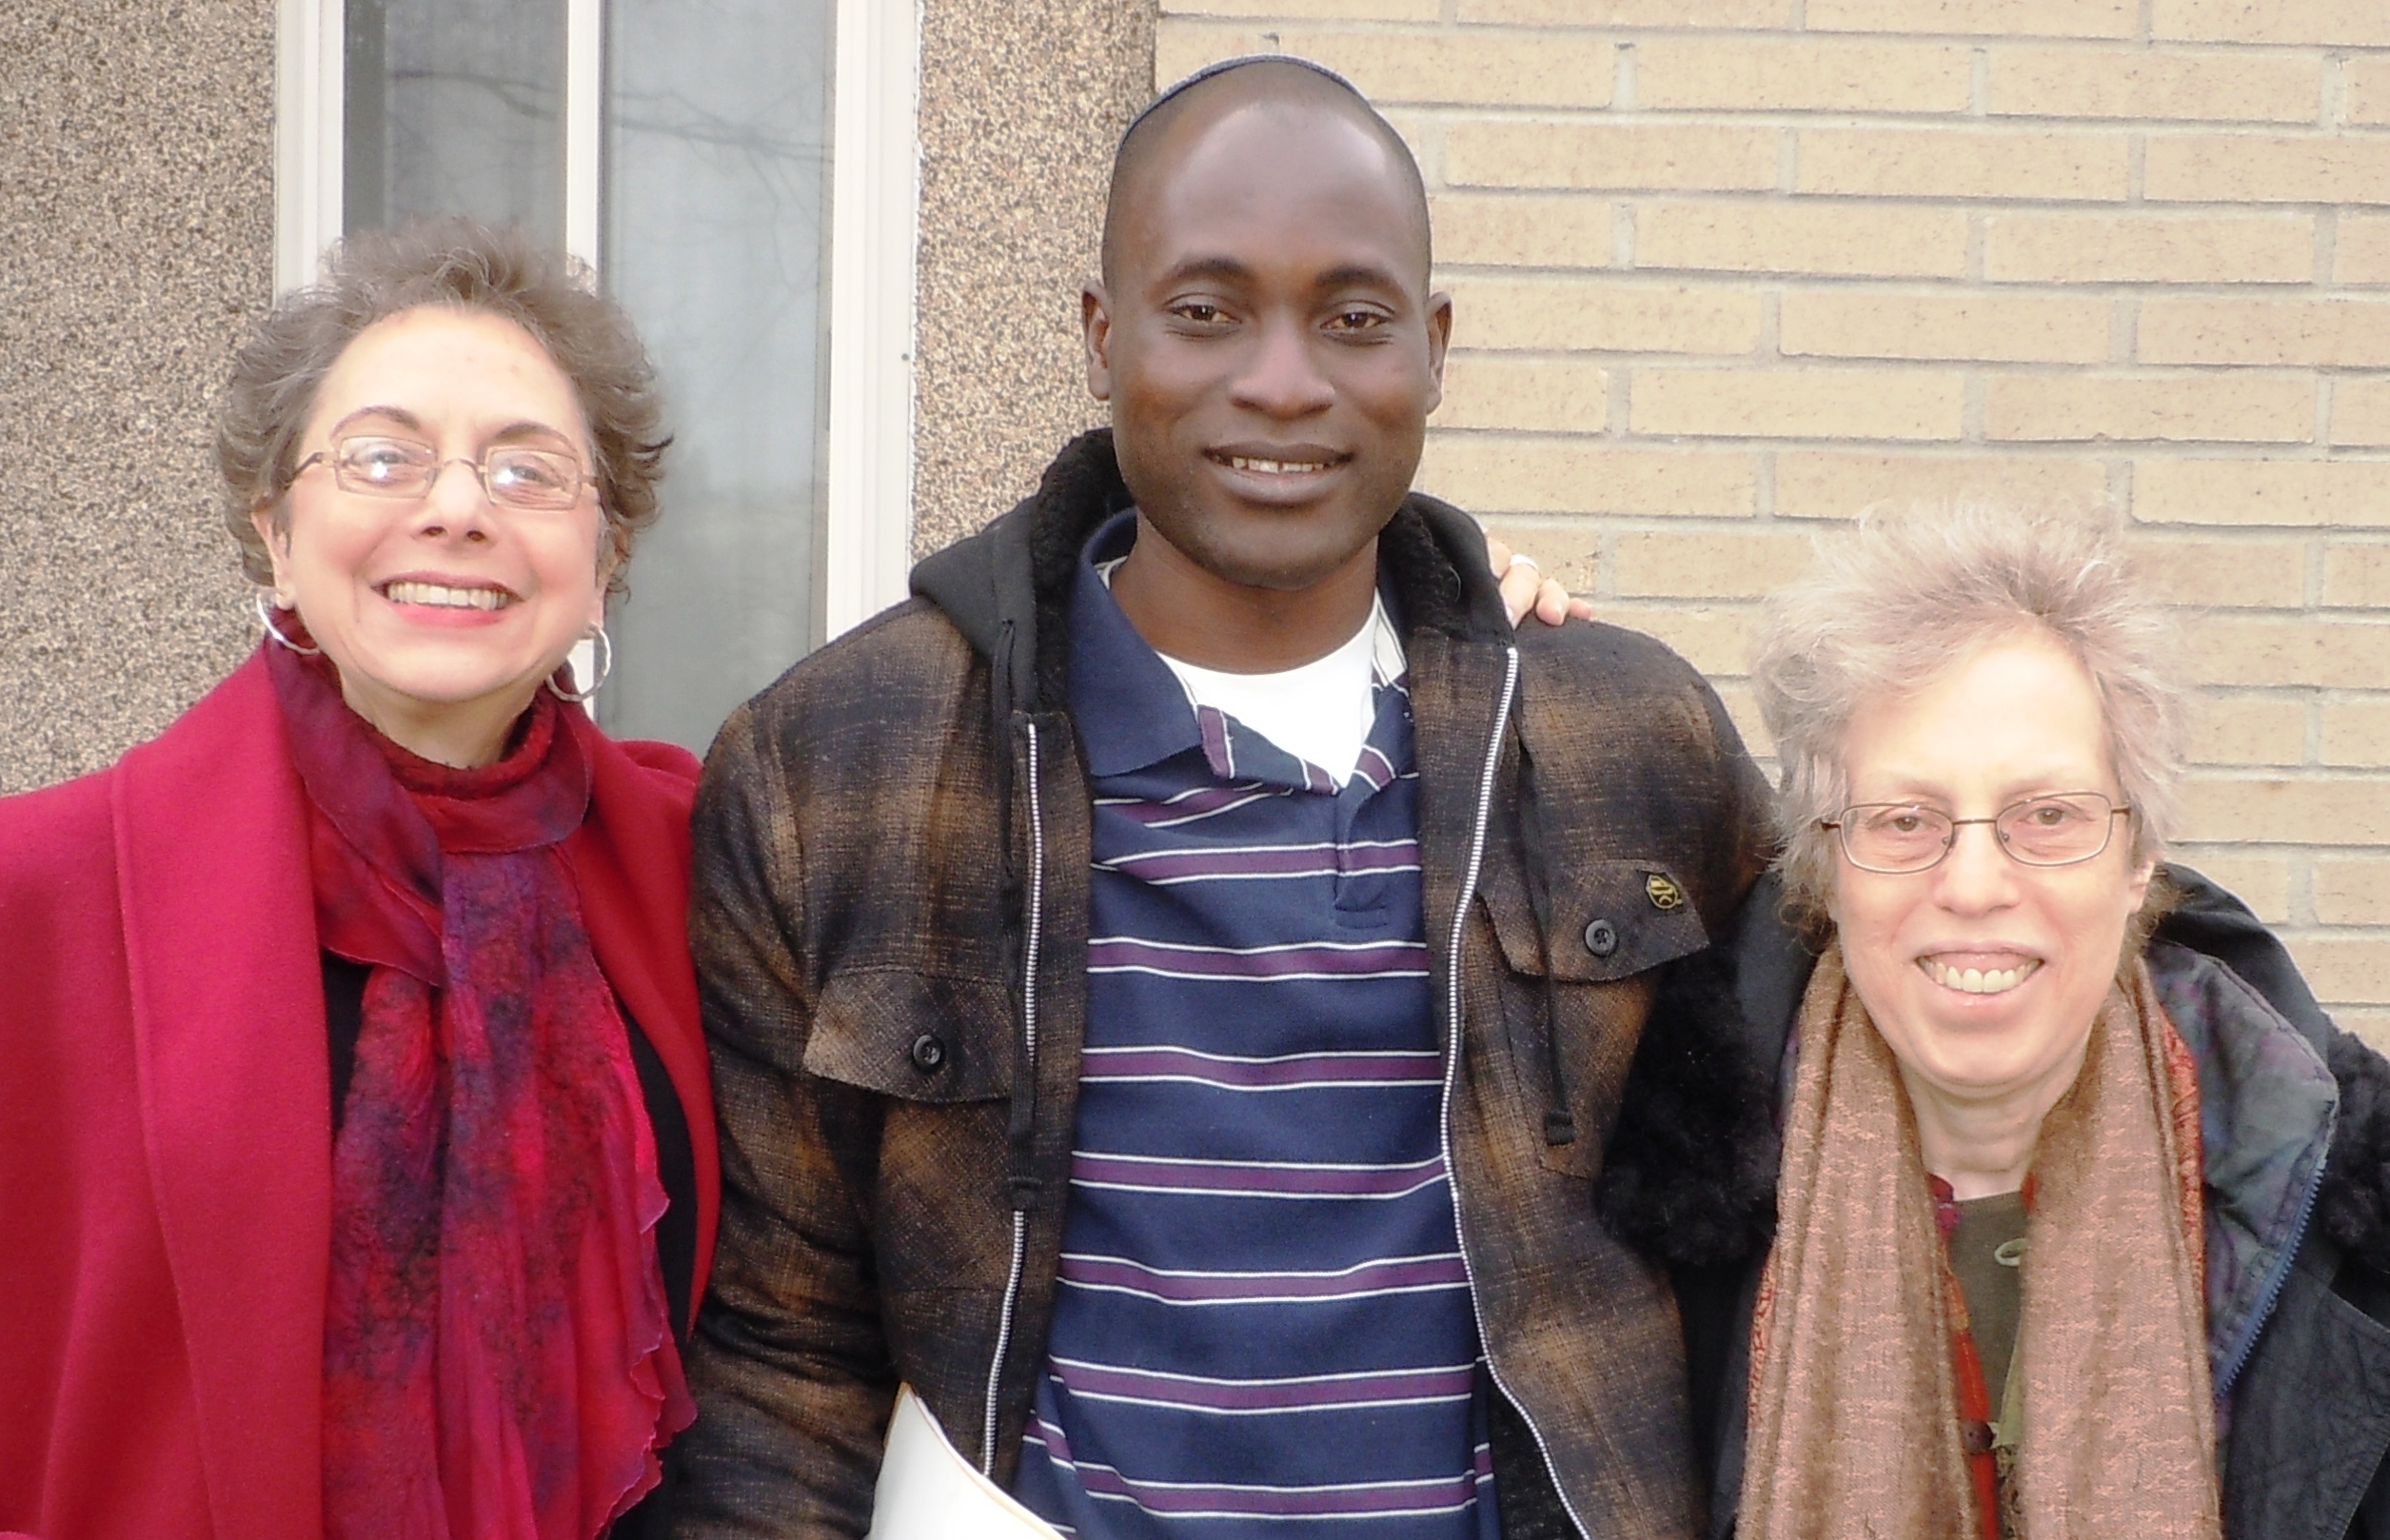 Kulanu board members Judy Manelis (L) and Harriet Bograd (R), with Serge Etele of Cameroon (M) in New York. Photo by Rabbi Sussman, February 2012.